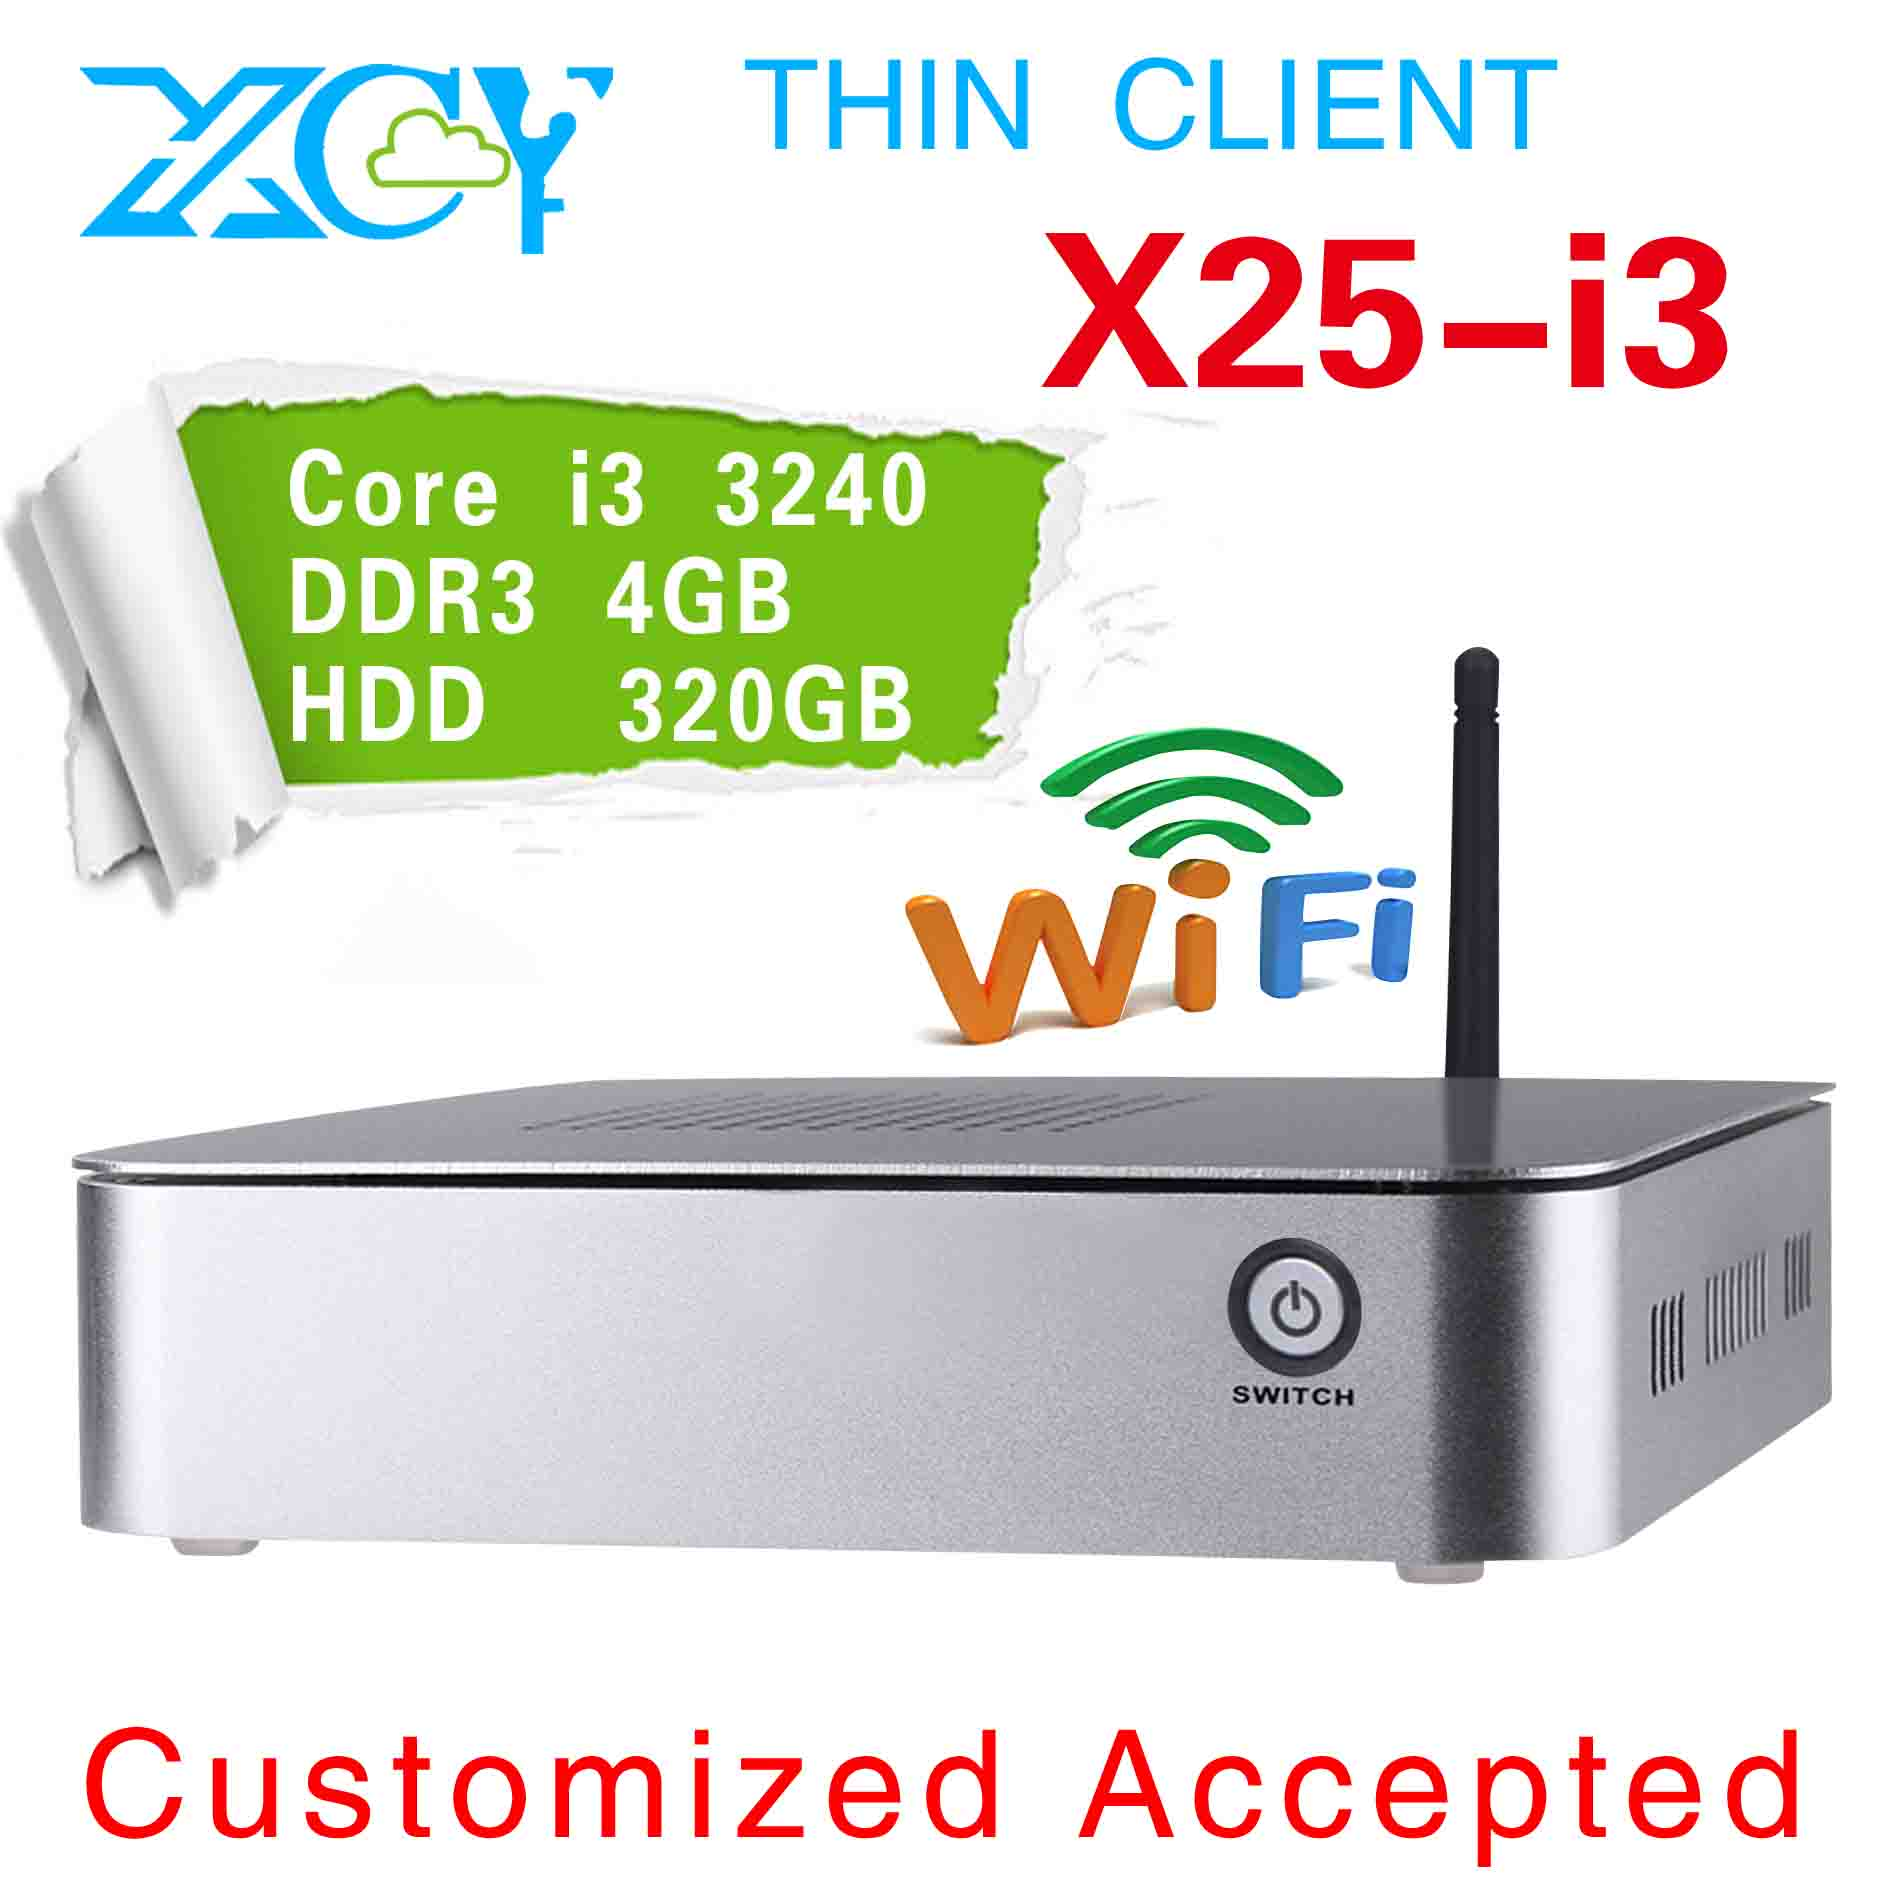 XCY X25-I3 X86 embedded computers embedded pc linux 1*HDMI support full-screen movies and 3D games(China (Mainland))